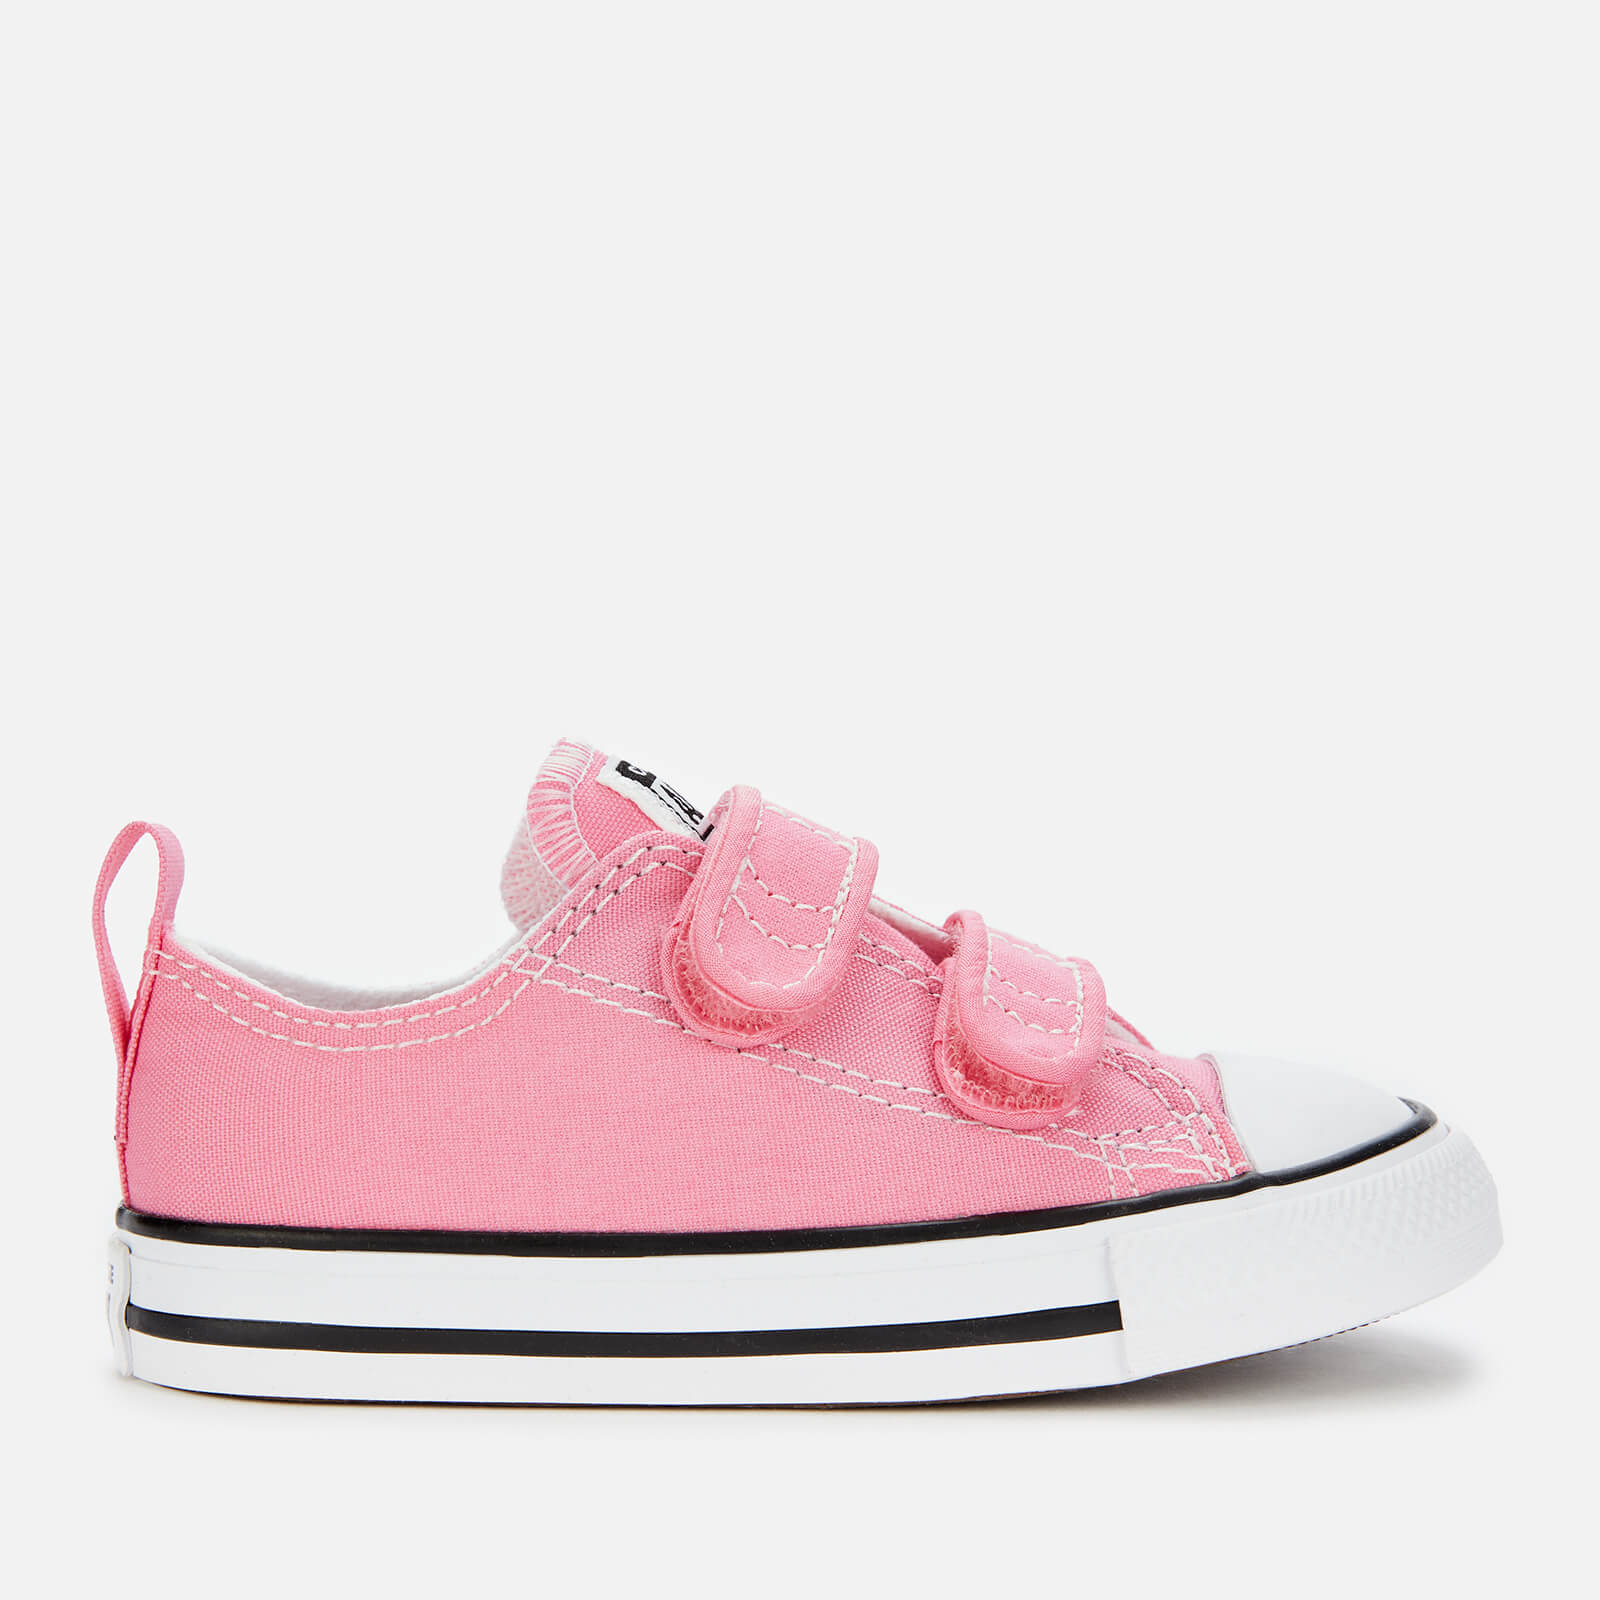 Converse Toddlers' Chuck Taylor All Star Ox Velcro Trainers - Pink - UK 4 Baby